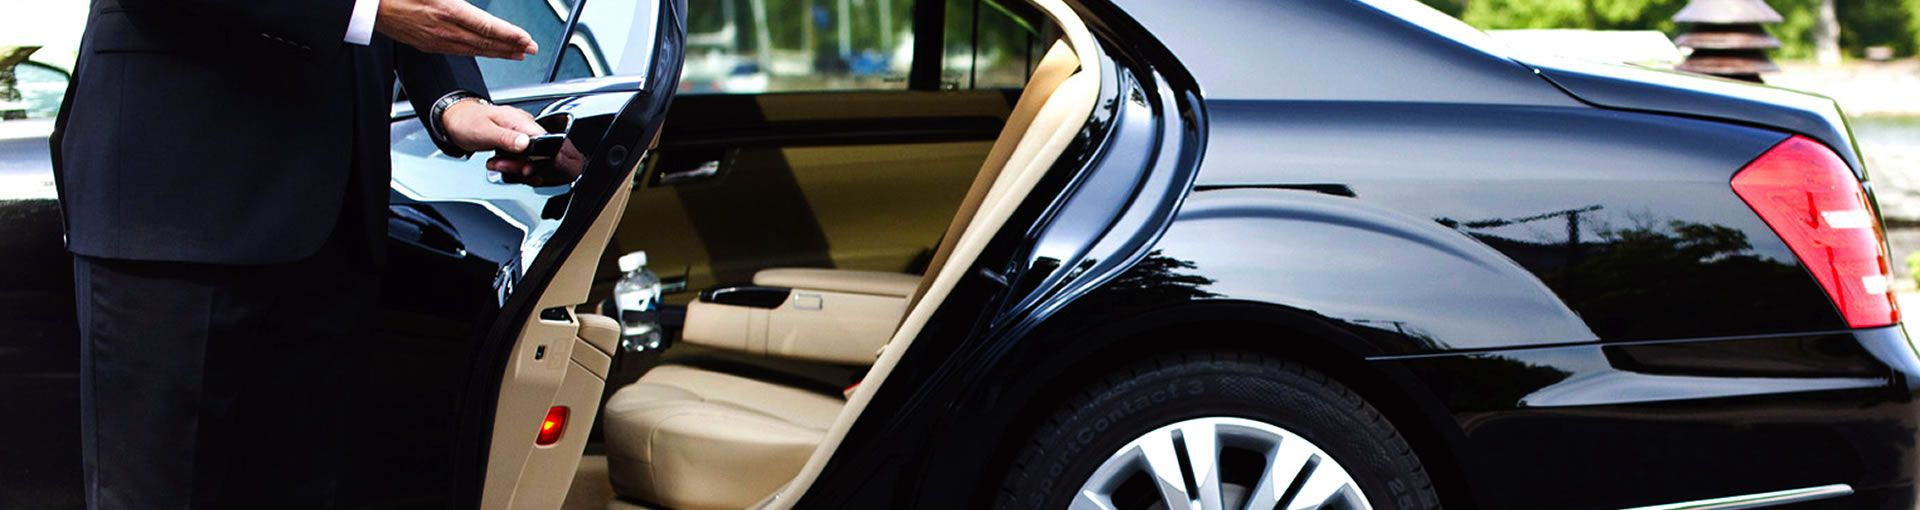 Luxury Transportation Exquisite Miami's Limos